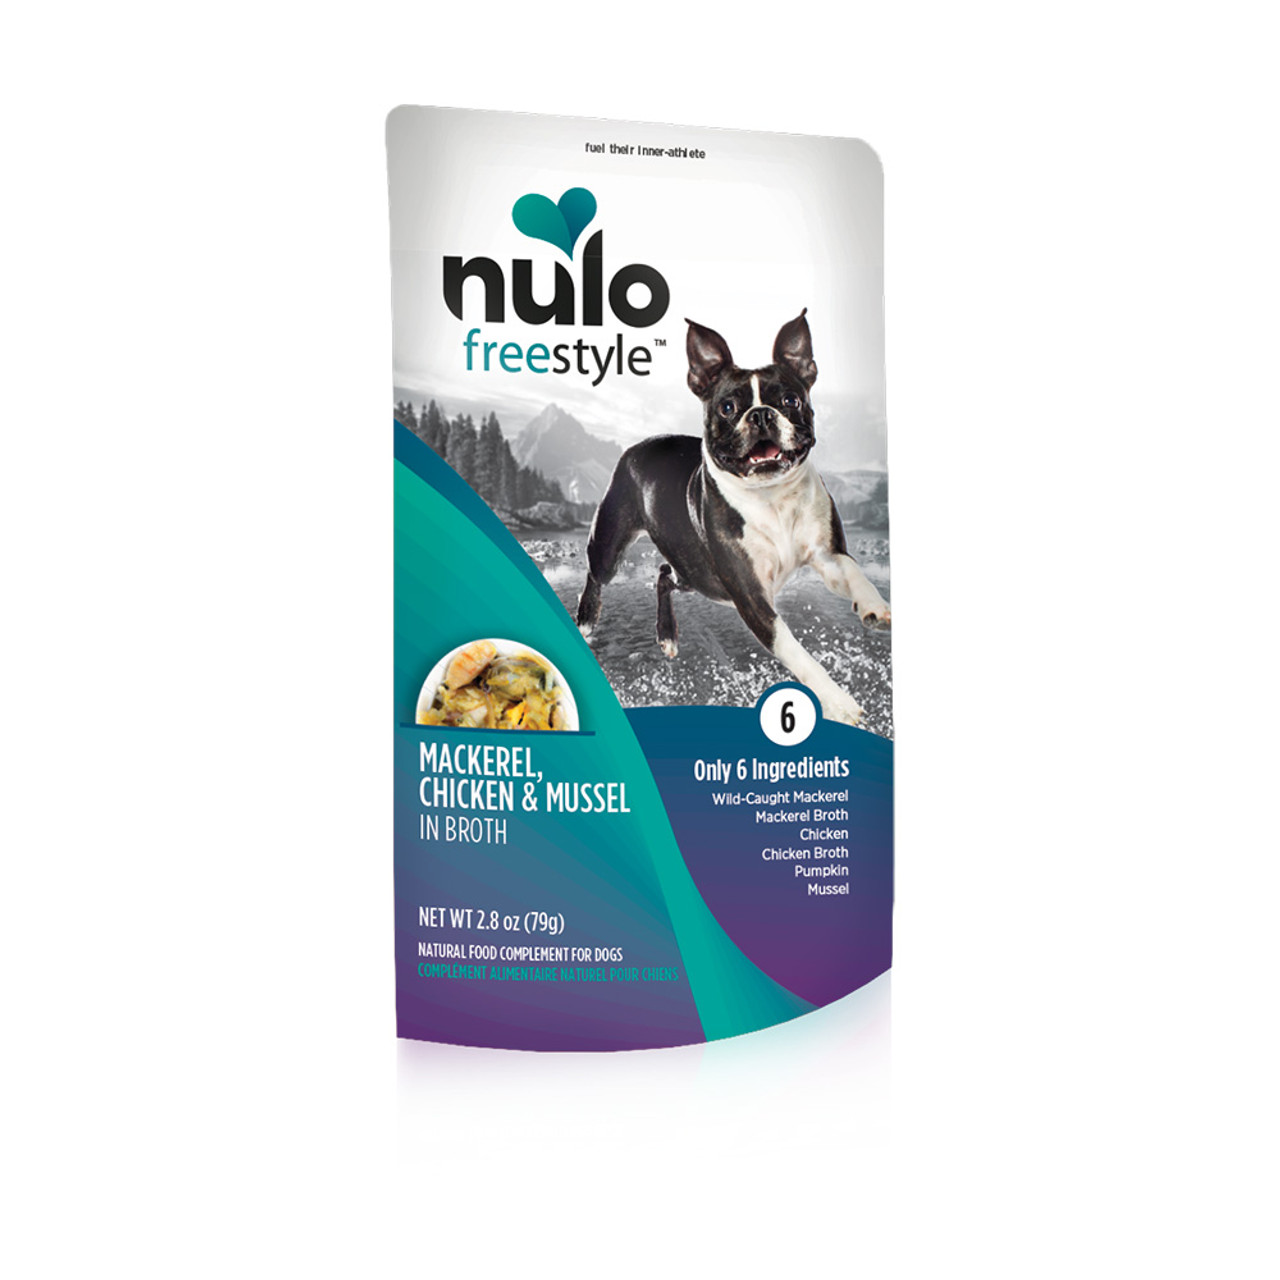 Nulo Freestyle Puppy & Adult Mackerel, Chicken & Mussel Recipe Dog Food Pouch